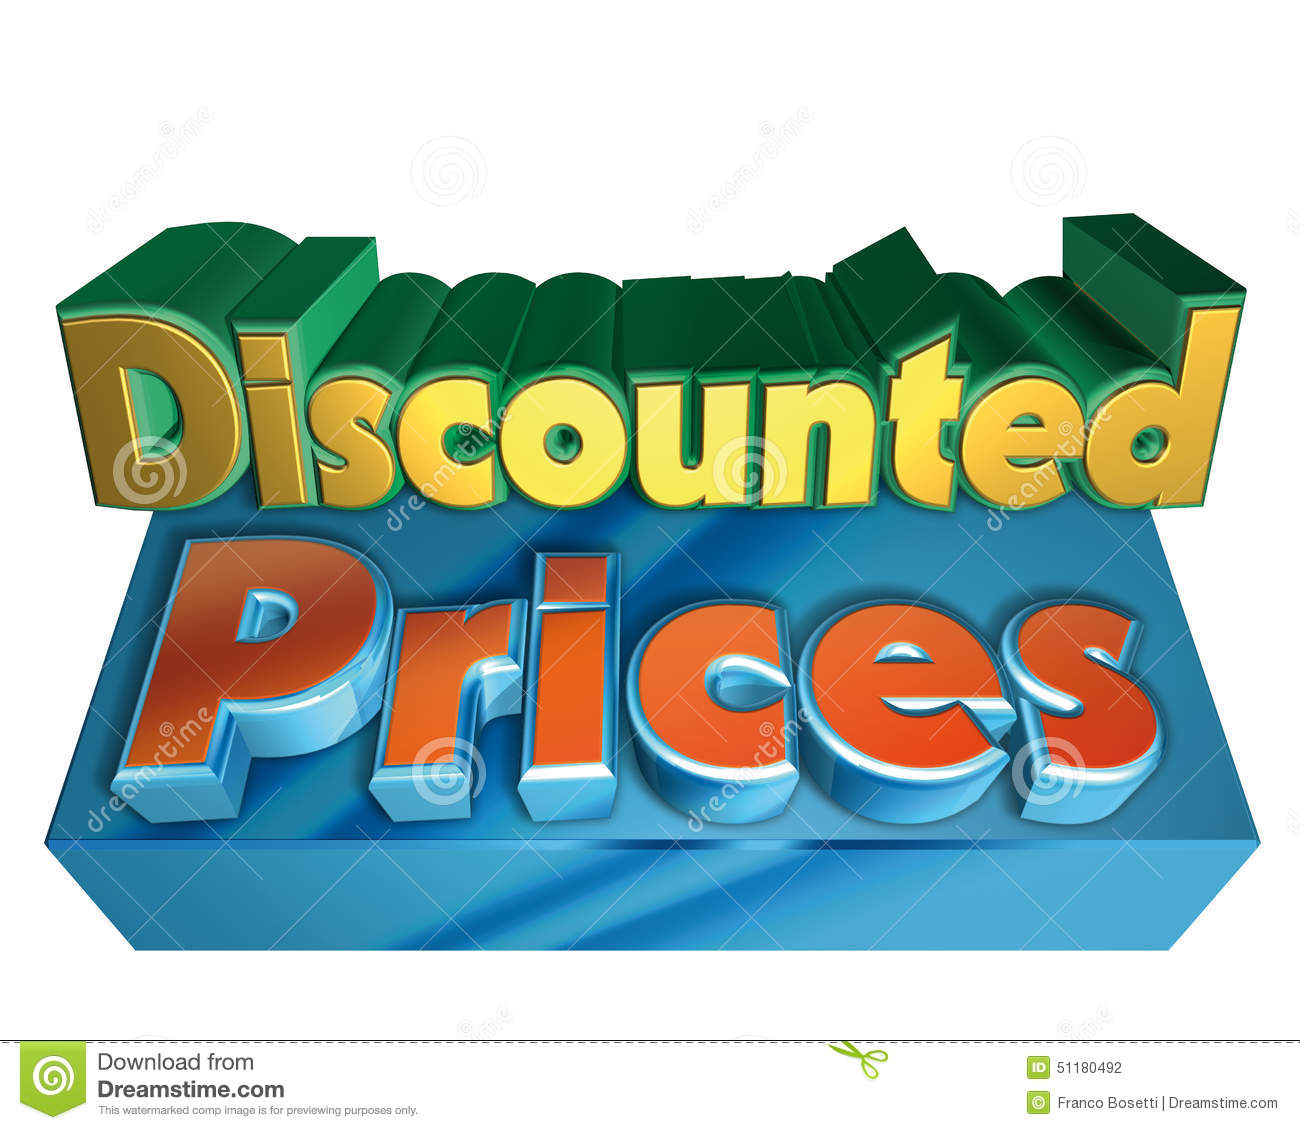 Http Dreamstime Com Stock Illustration Discounted Prices Illustration Text White Background Image51180492